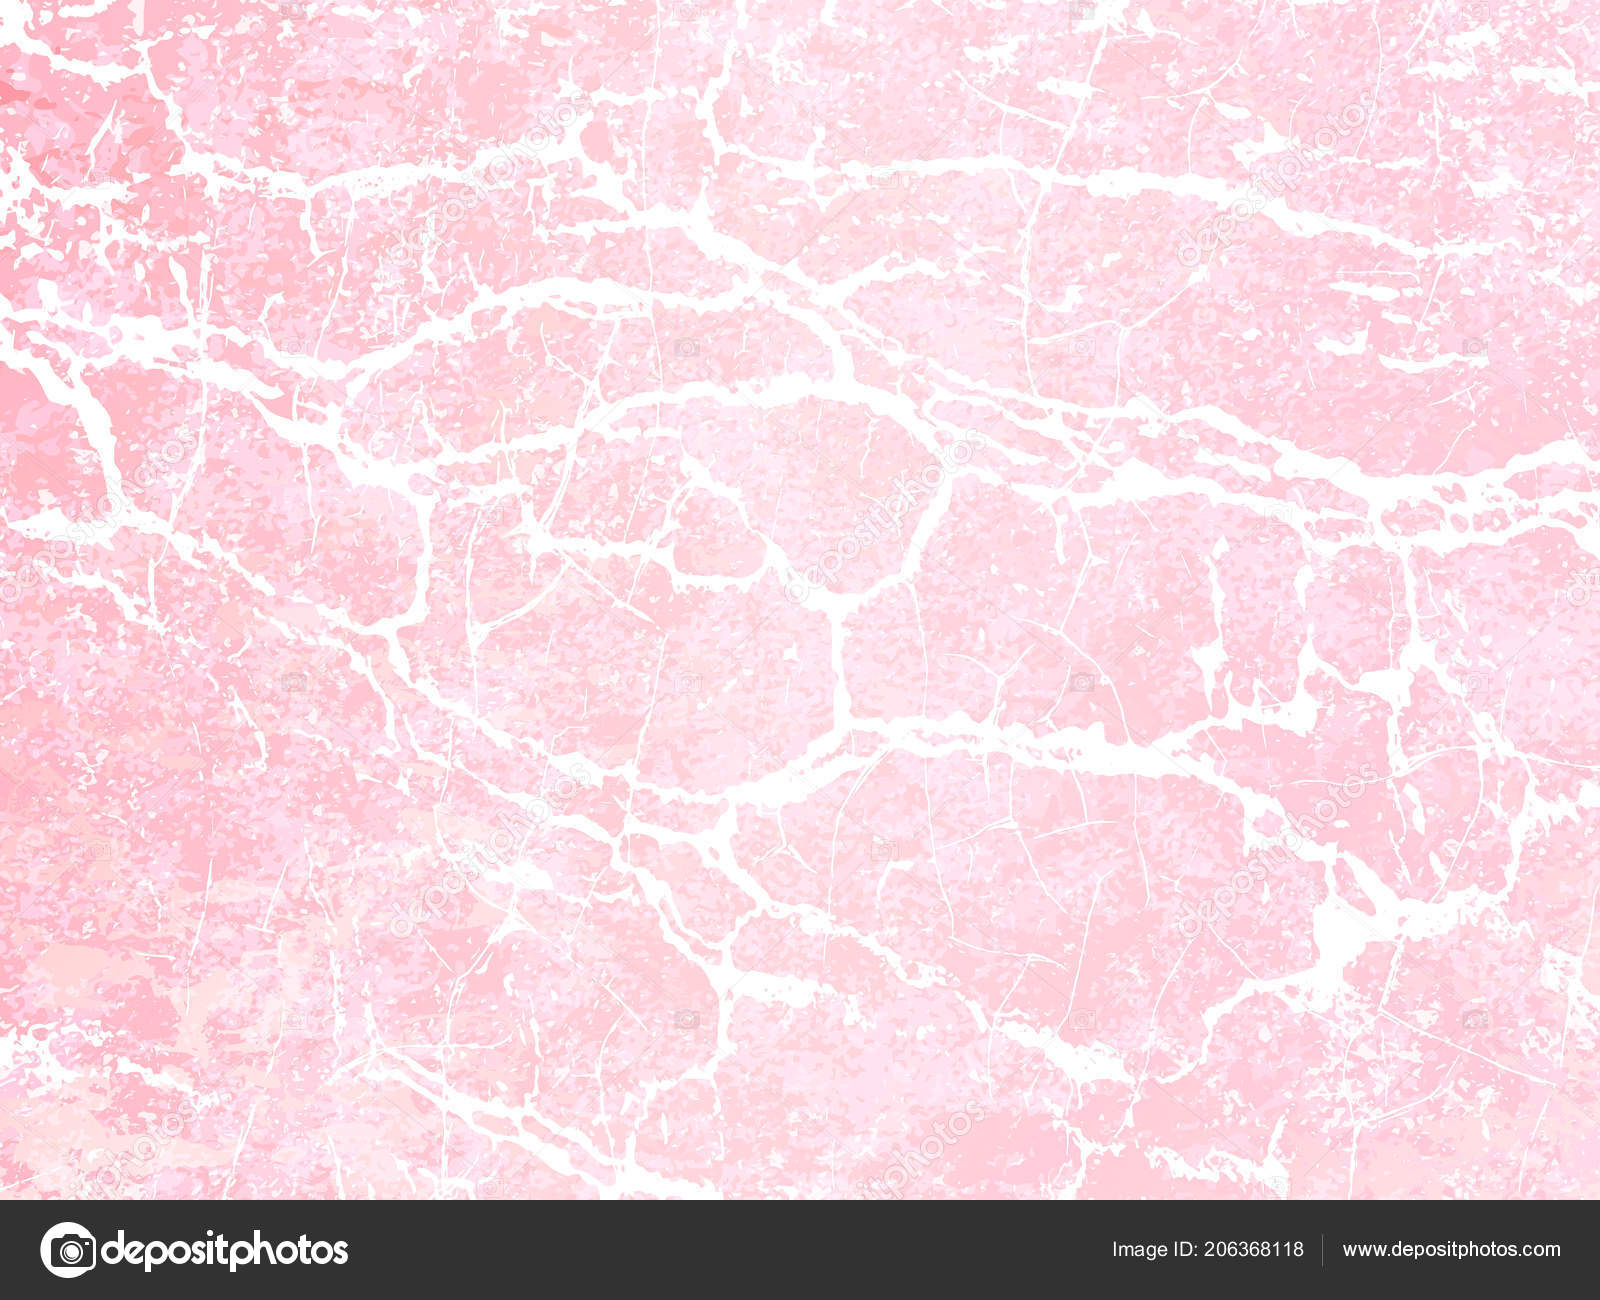 Background Rose Gold Marble Backgrounds Vector Rose Gold Marble Background Rose Gold Metallic Texture Trendy Stock Vector C Artemisia1508 Gmail Com 206368118